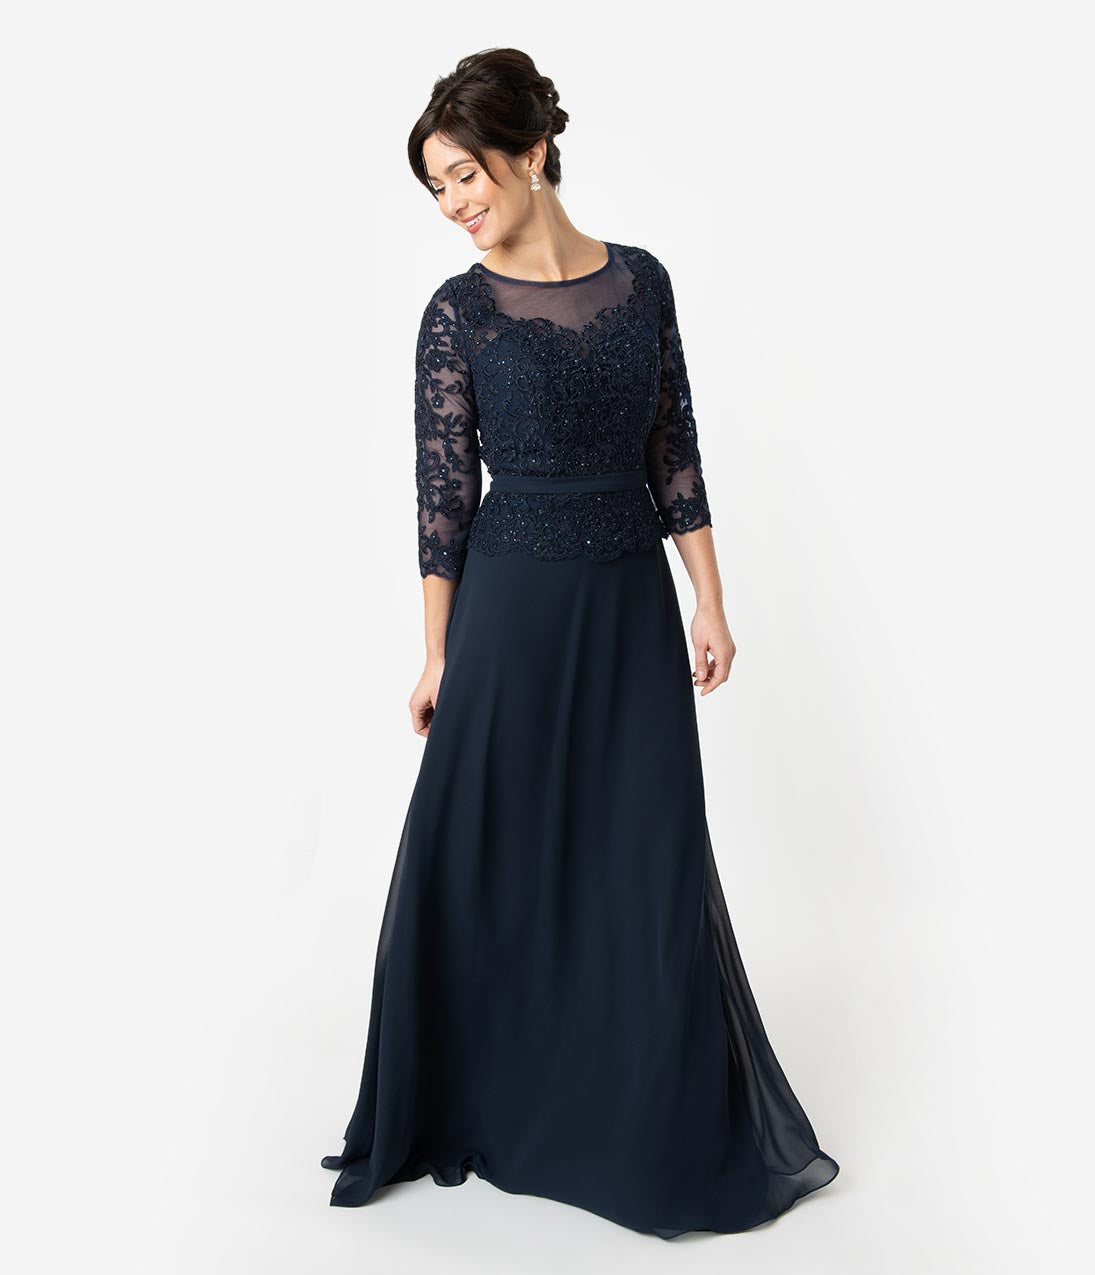 1940s Dresses | 40s Dress, Swing Dress Navy Blue Embellished Chiffon Sleeved Peplum Modest Long Dress $172.00 AT vintagedancer.com